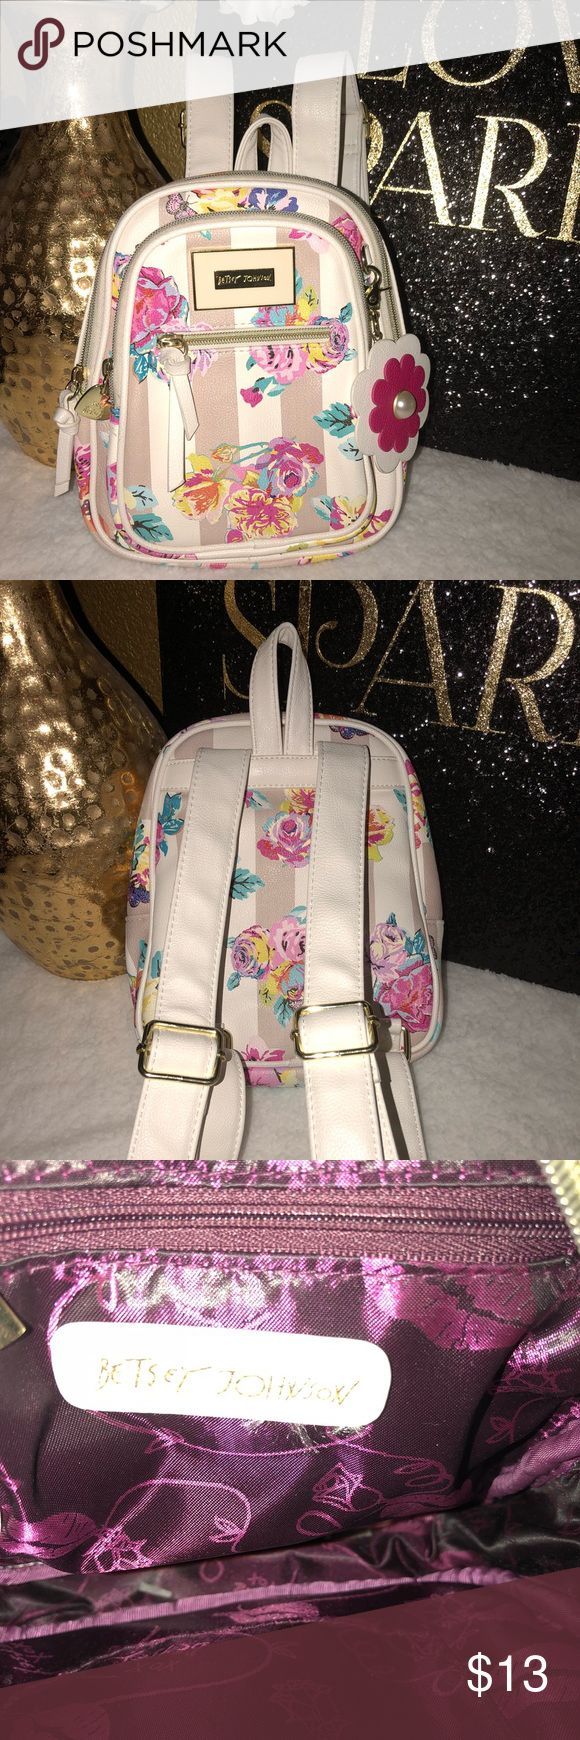 *Betsey Johnson mini backpack •White/cream backpack  •Multi color floral print  •Gently used- good condition Betsey Johnson Bags Backpacks